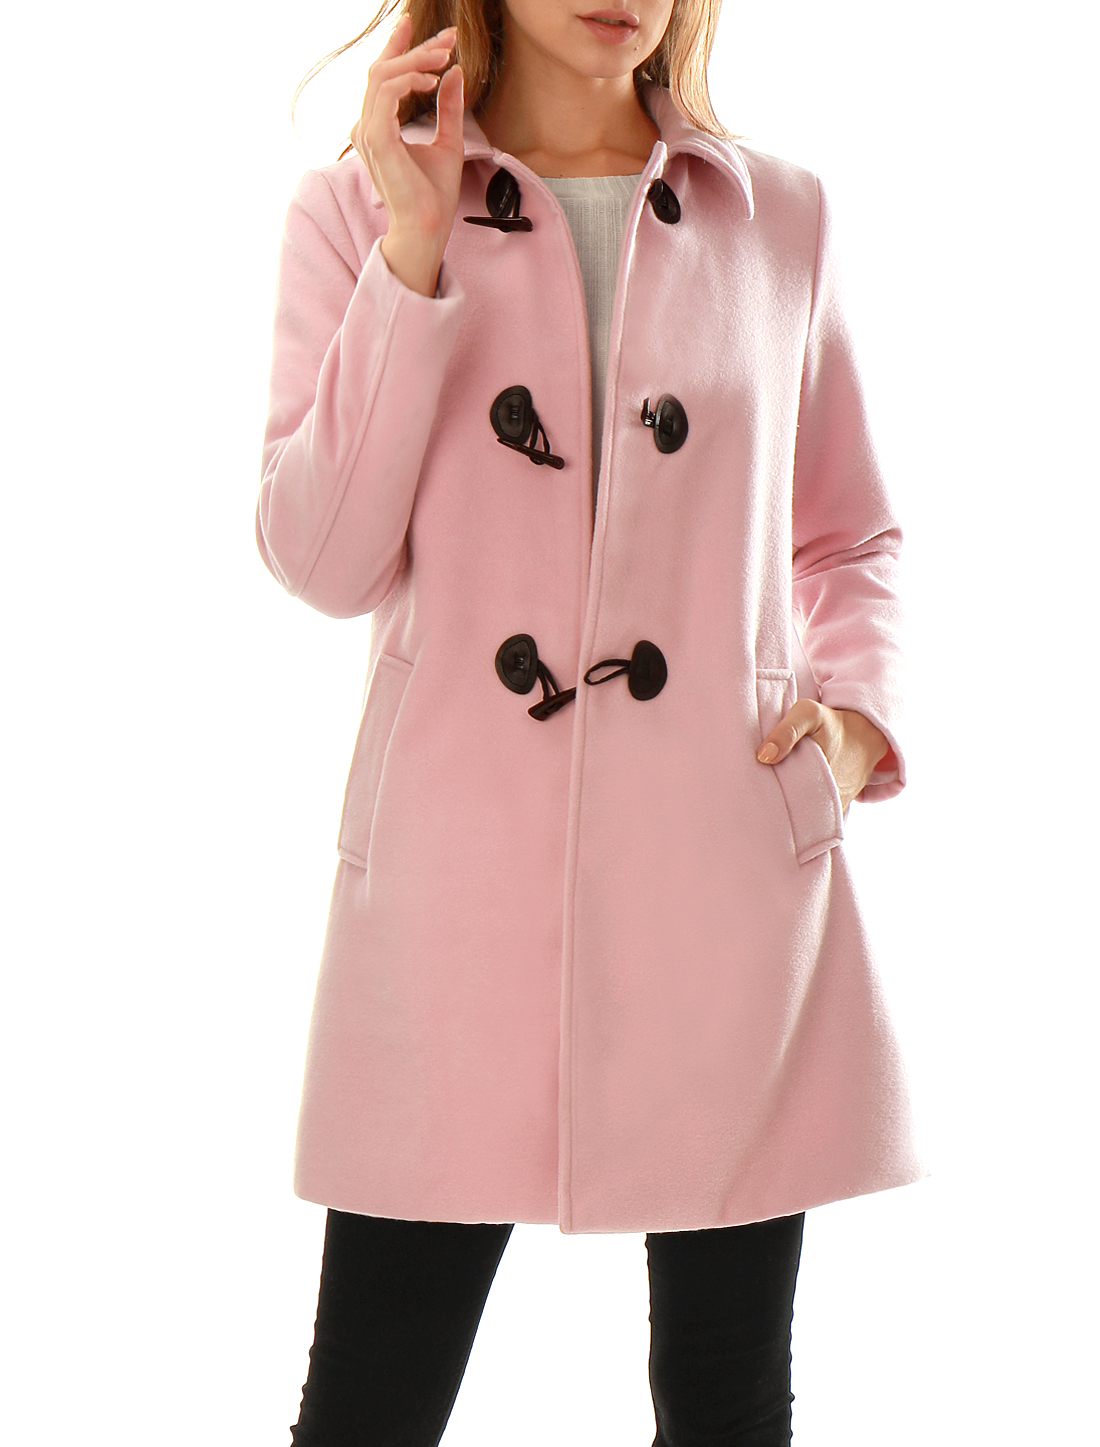 Women Turn Down Collar Slant Pockets Worsted Longline Toggle Coat Pink L